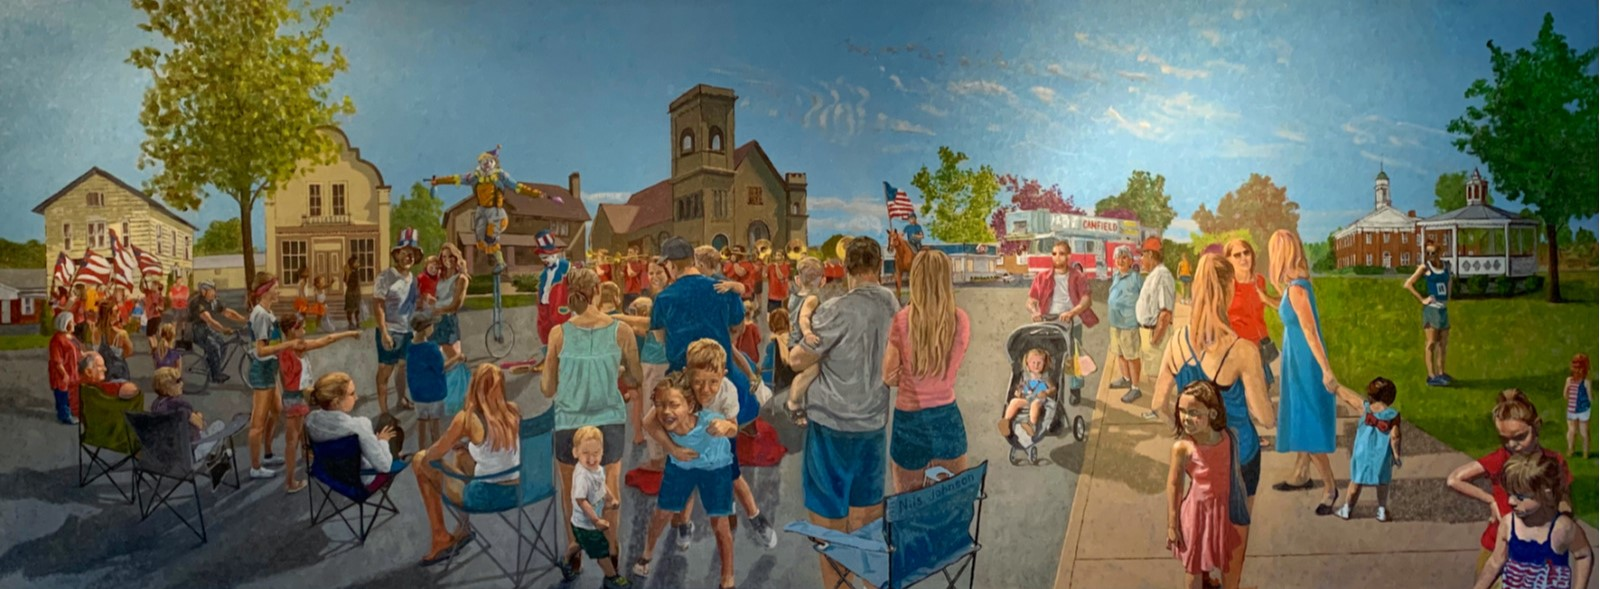 Nils Johnson Painting of Canfield 4th of July